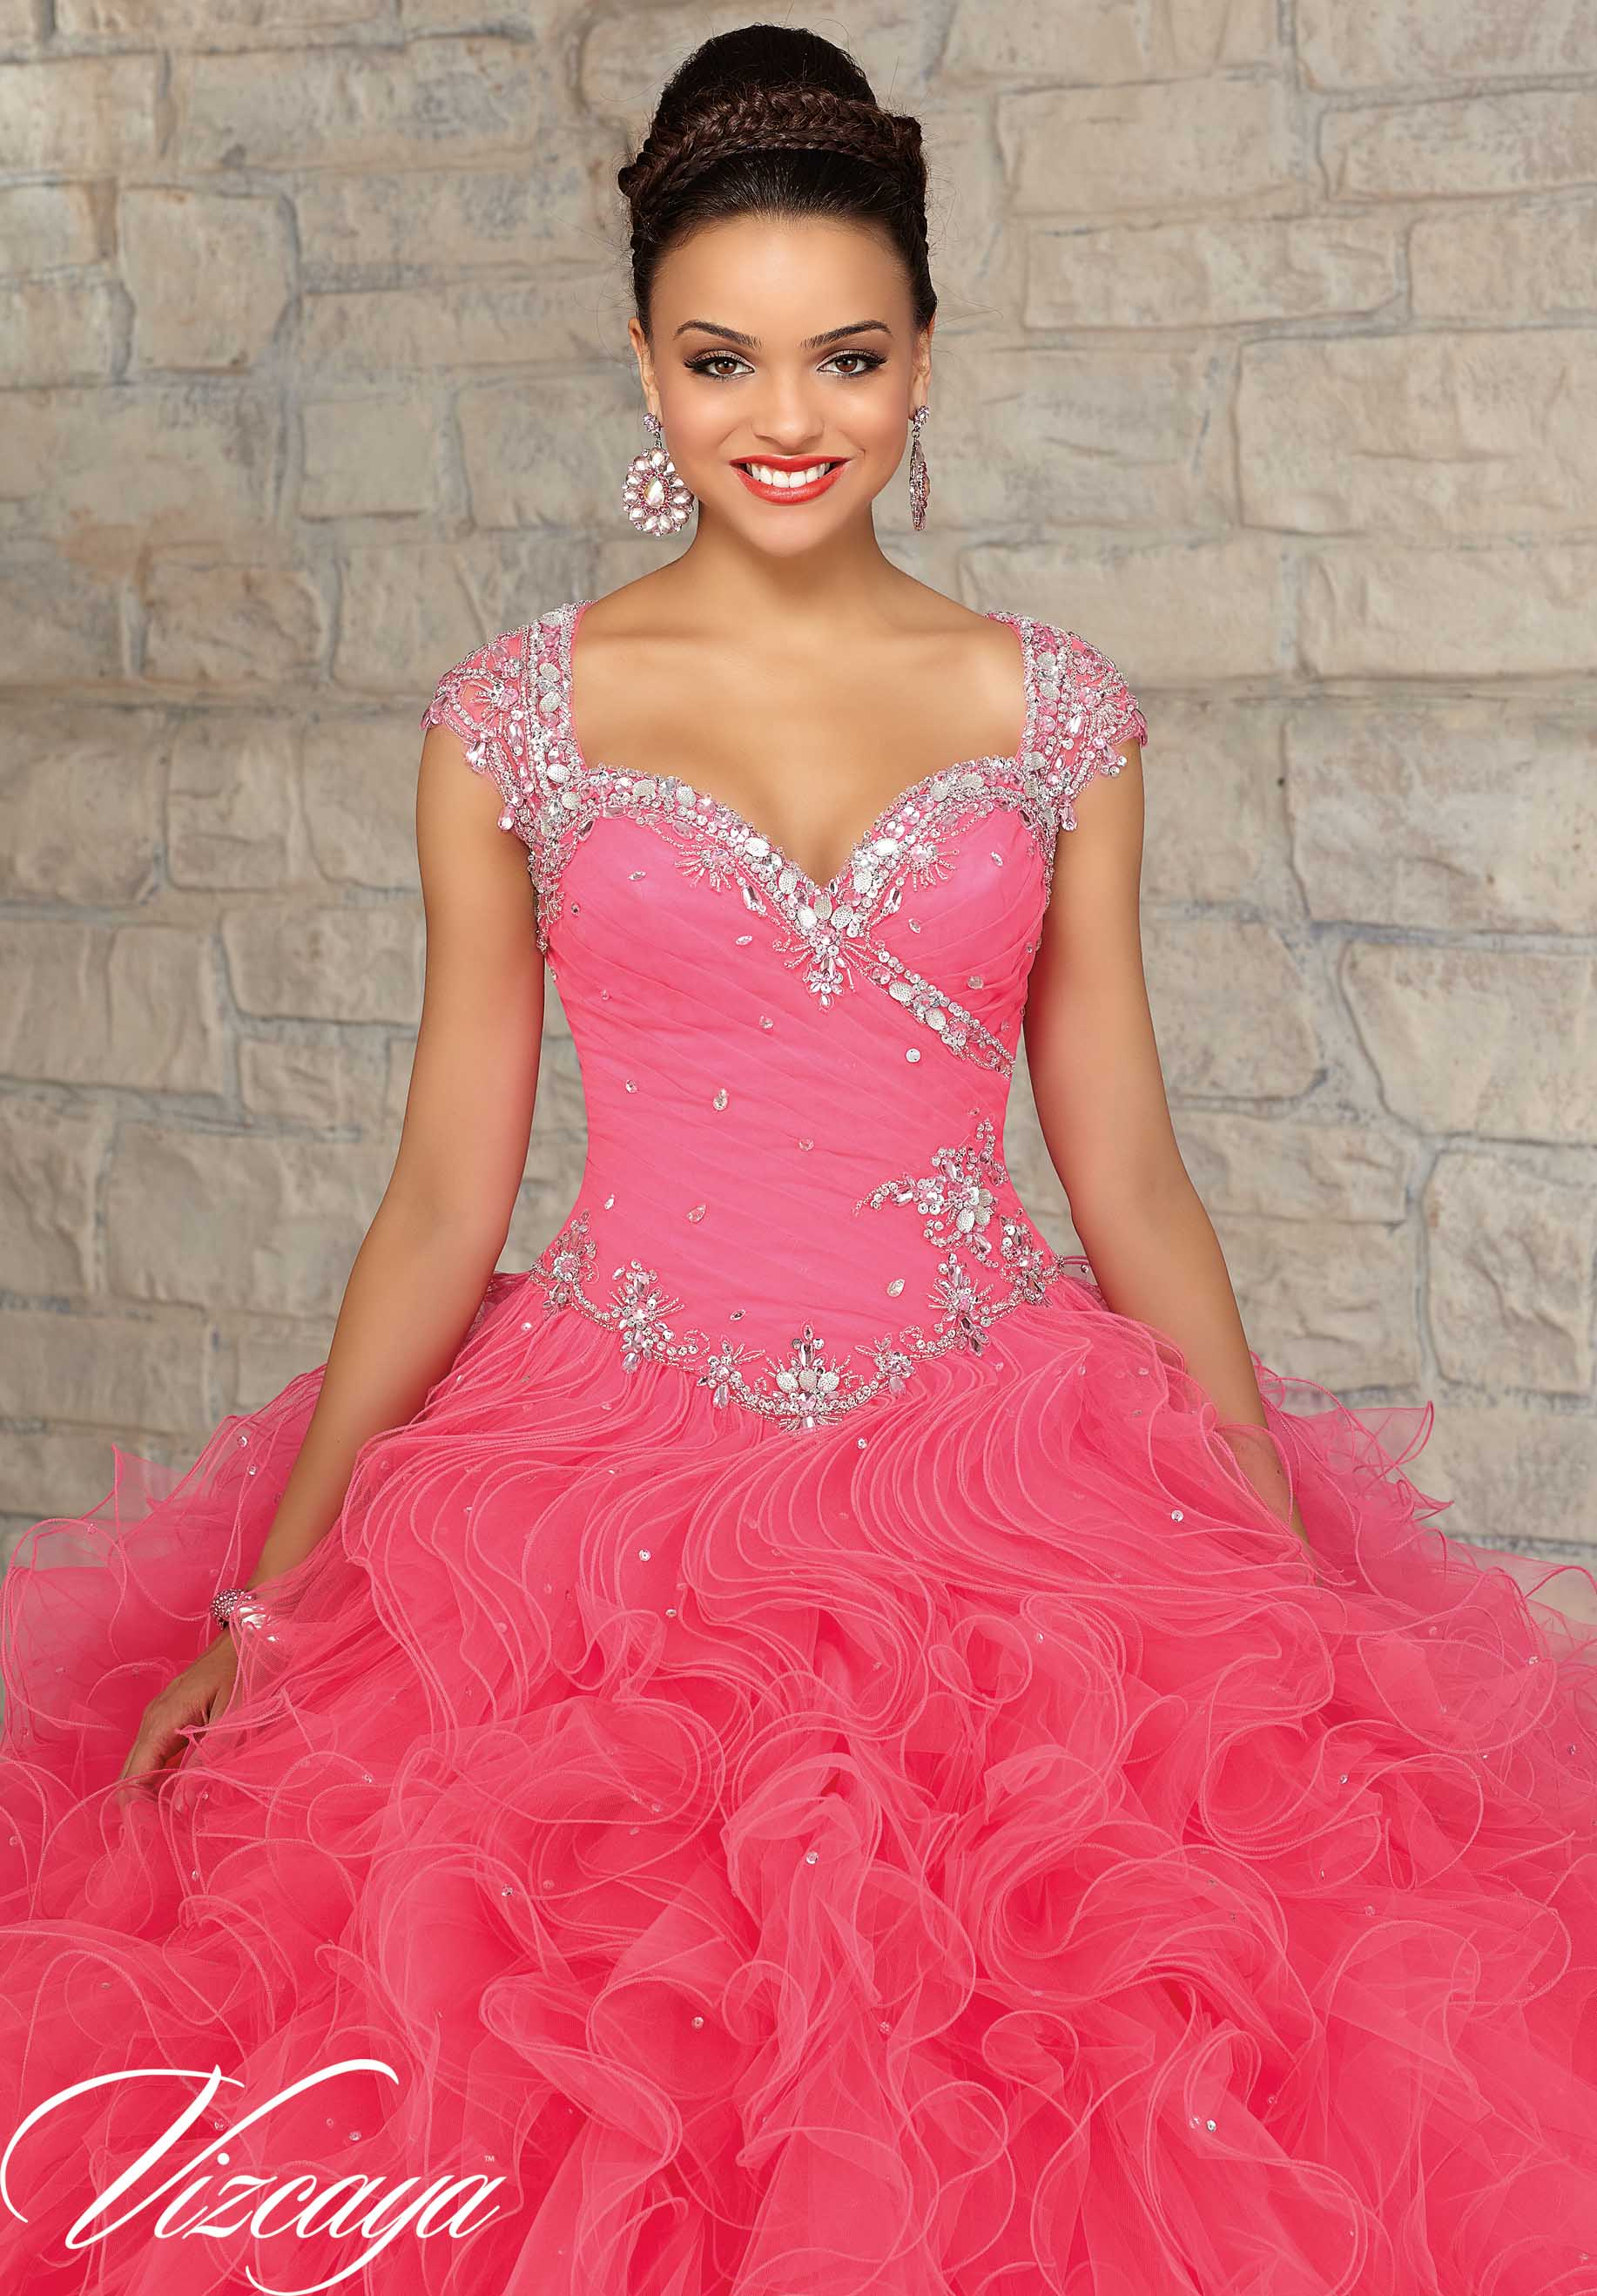 e2f298a916c Vizcaya Quinceanera Dresses by Mori Lee are Stunning